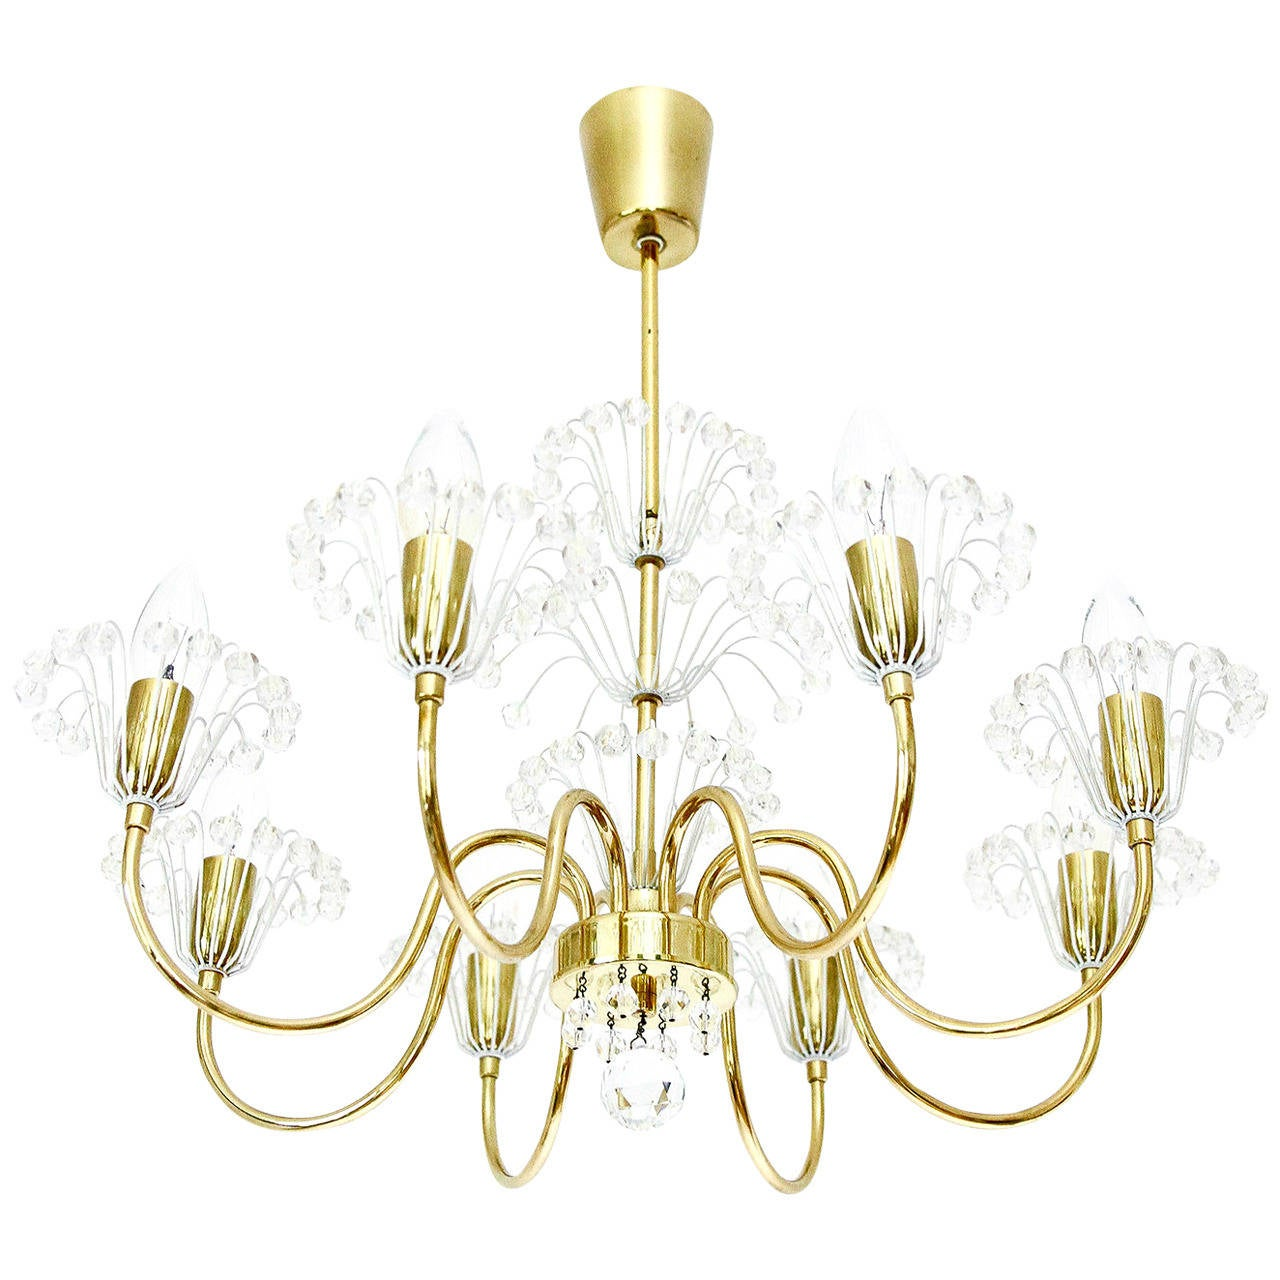 Emil Stejnar Chandelier for Rupert Nikoll, Brass and Glass, 1950s For Sale